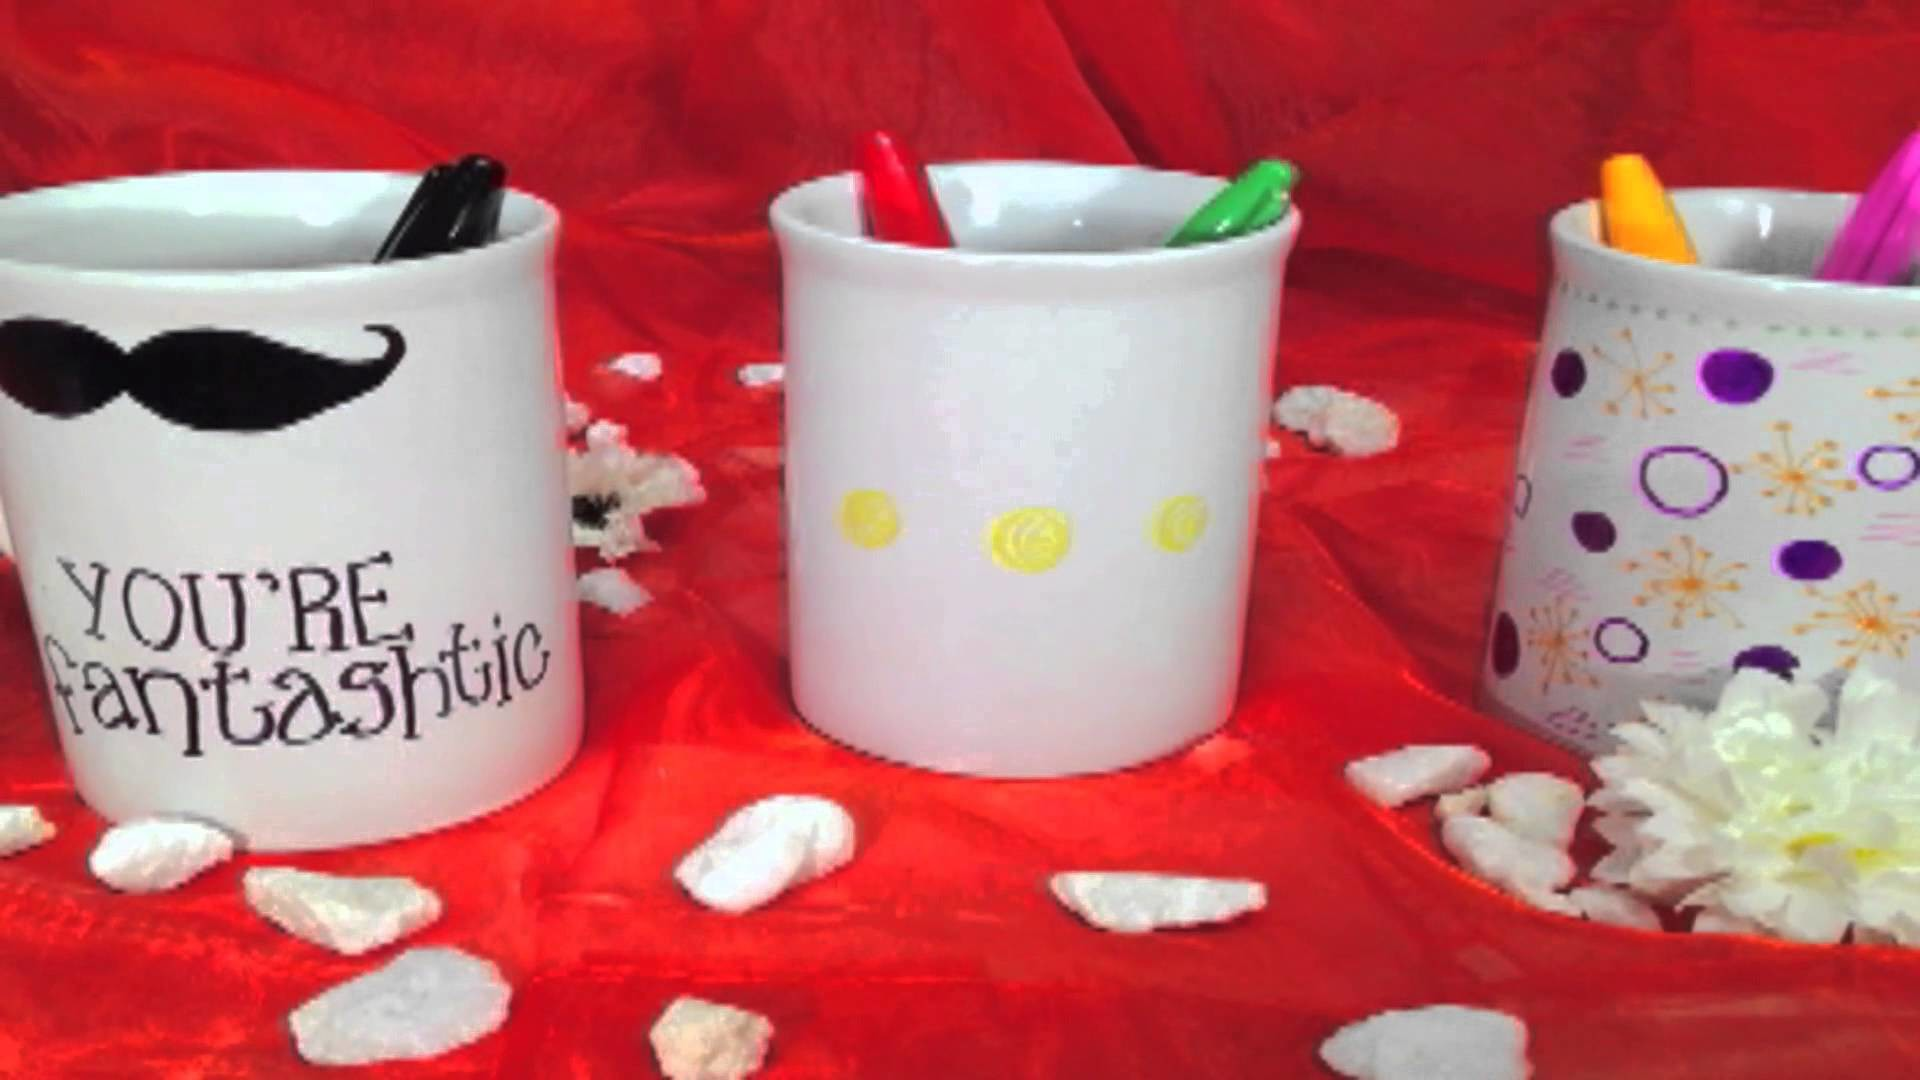 DIY Mug Art - Fun, Simple & Stylish !